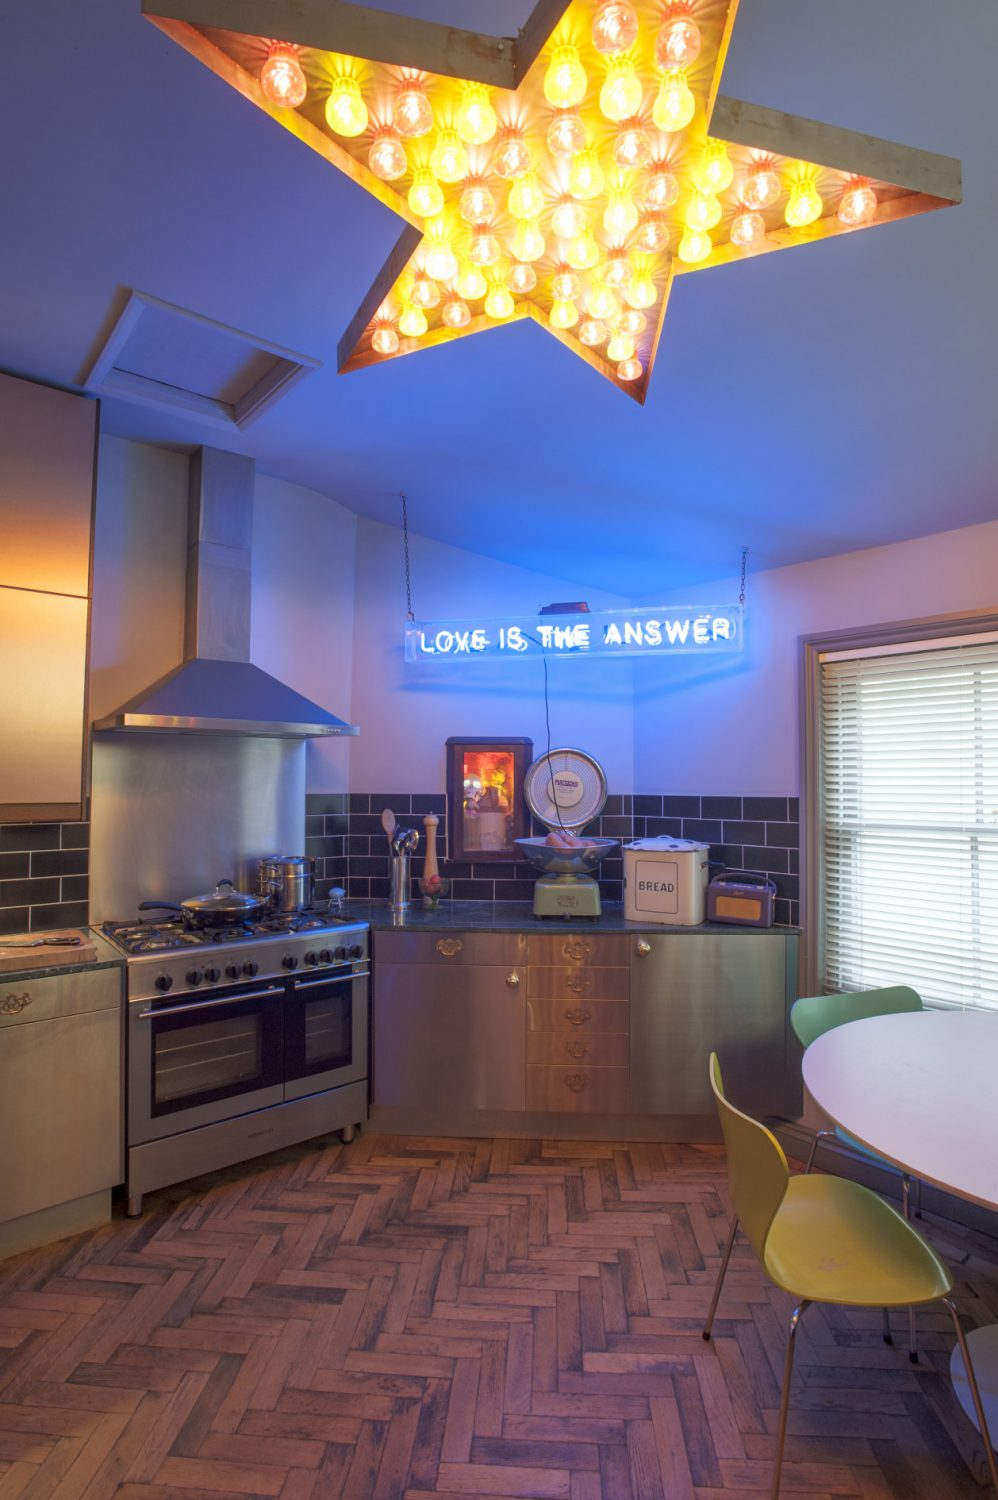 Centrepiece of the kitchen is a giant ceiling-mounted star. The copper-fronted units that Philip and Olivia found in IKEA reflect the light into every corner of the room